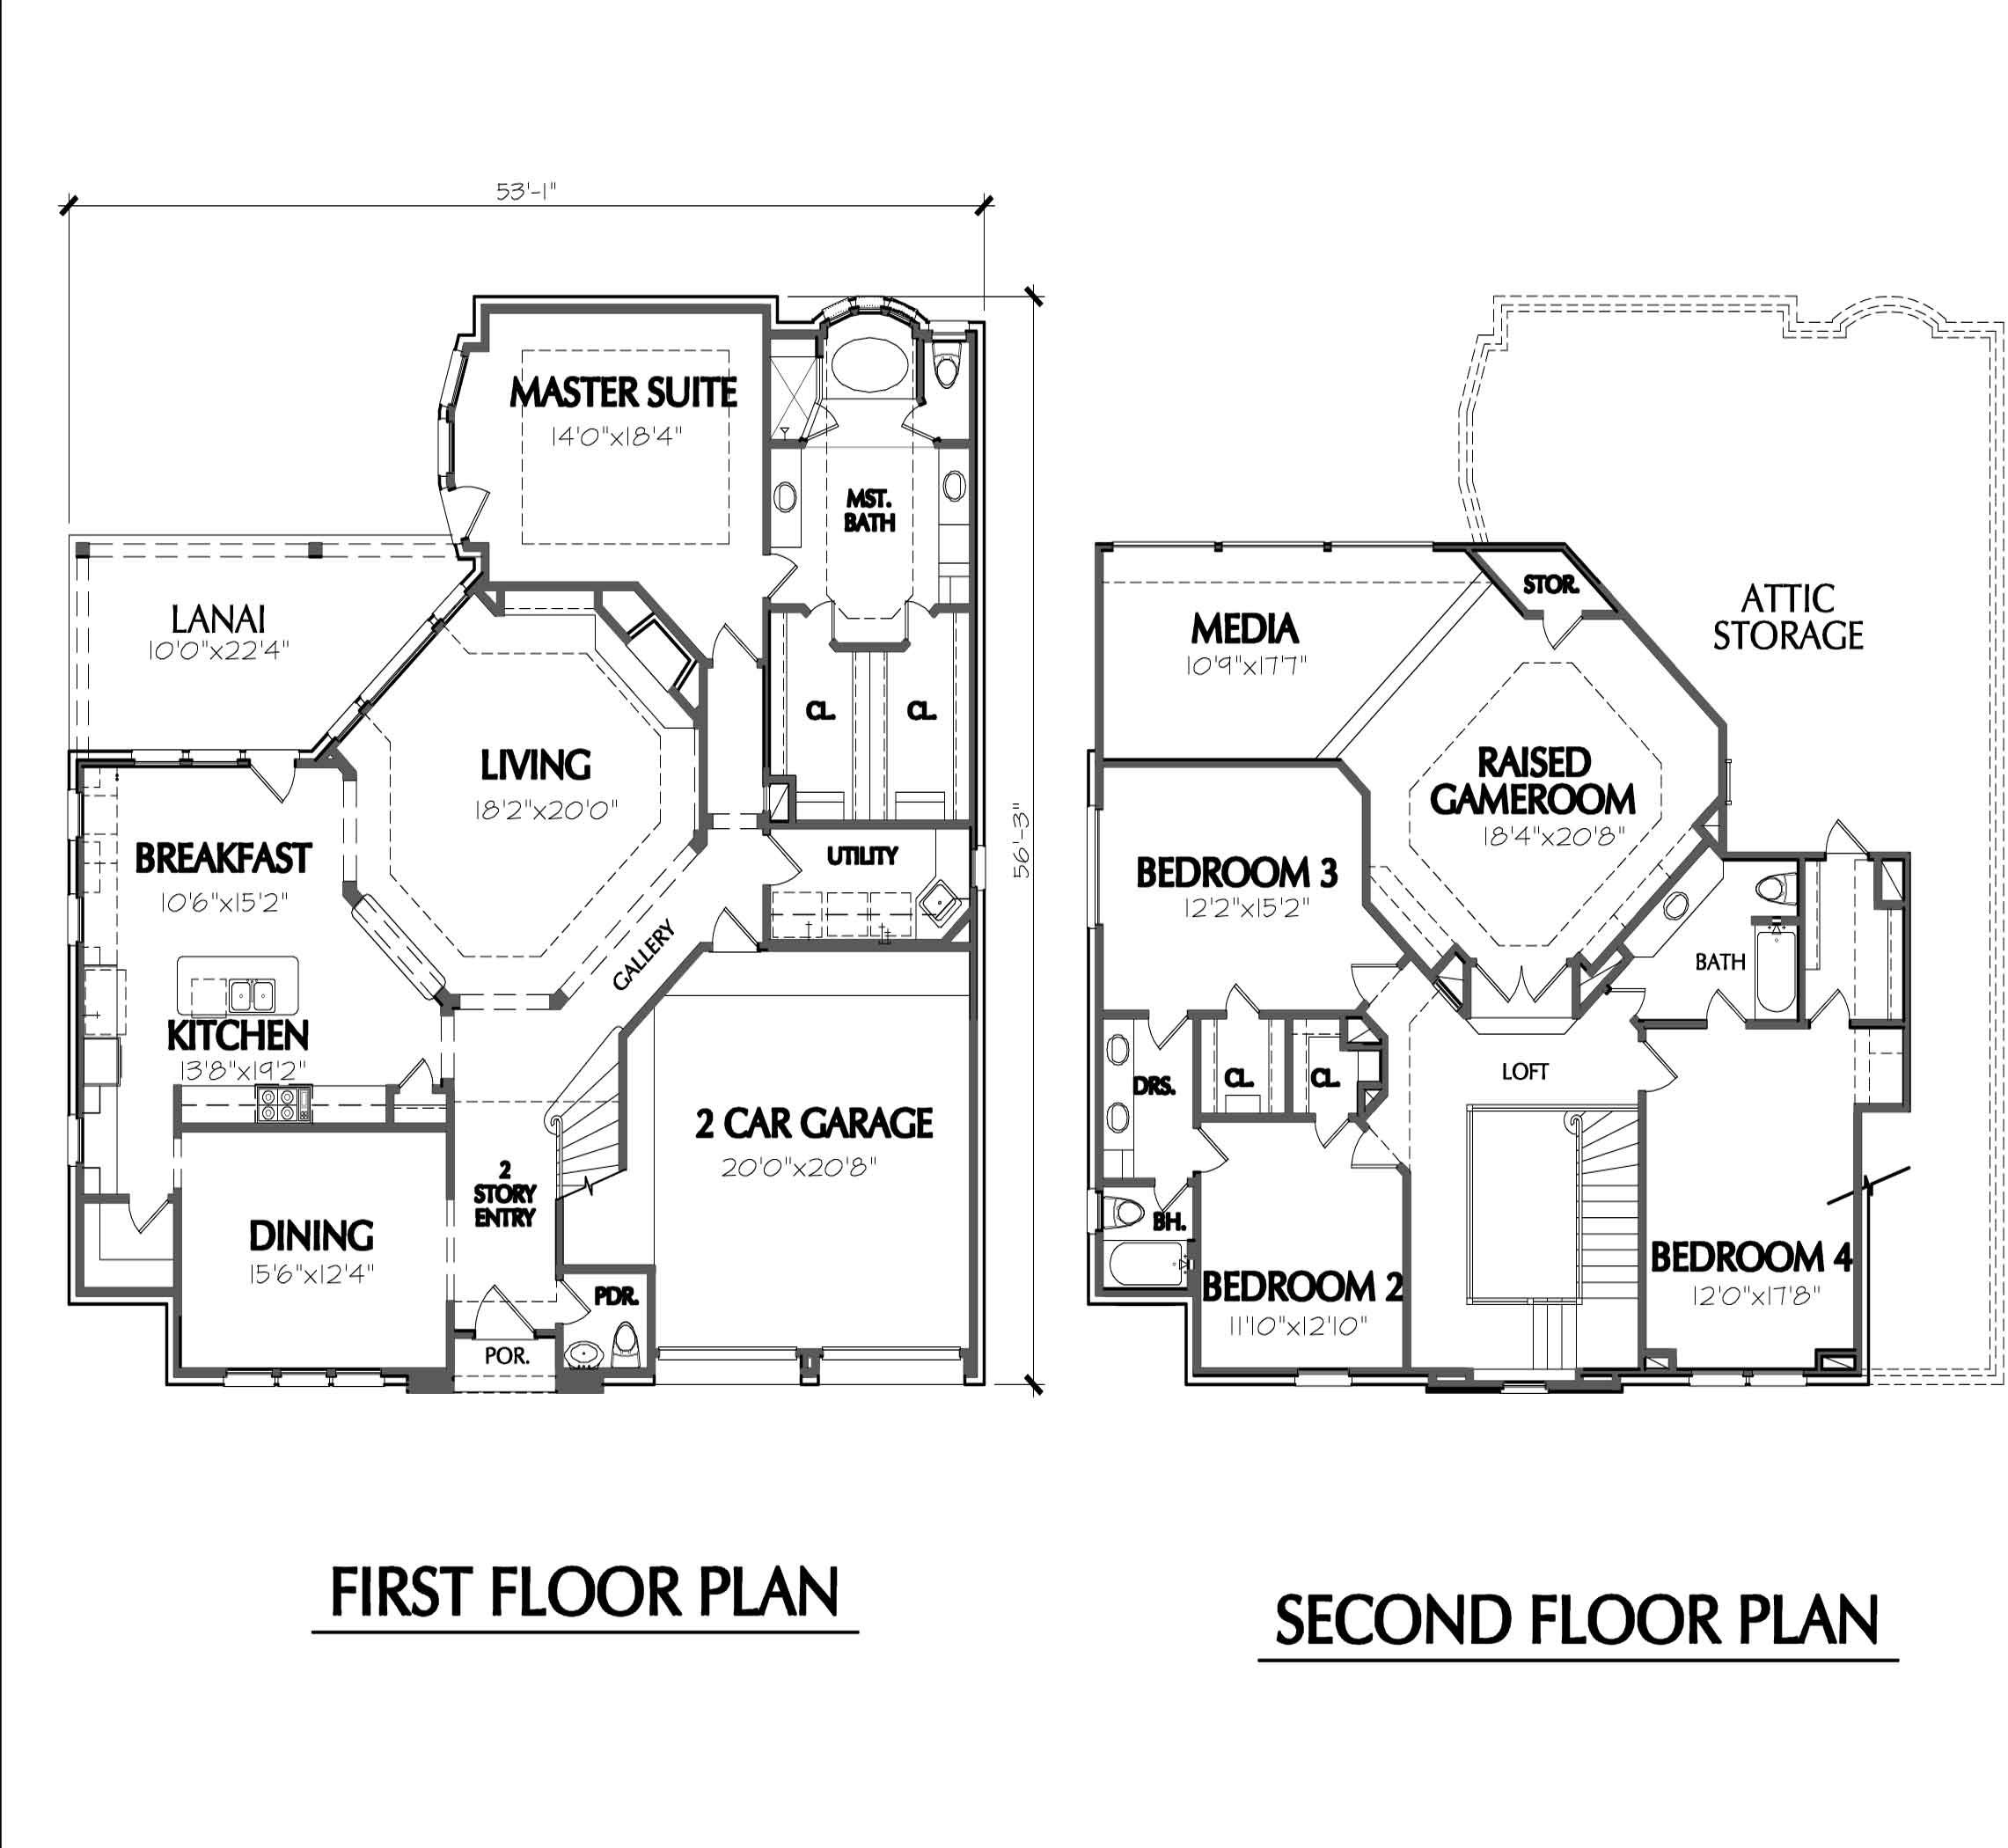 floor plan aflfpw12035 1 story home 2 baths image 20 of 23 click